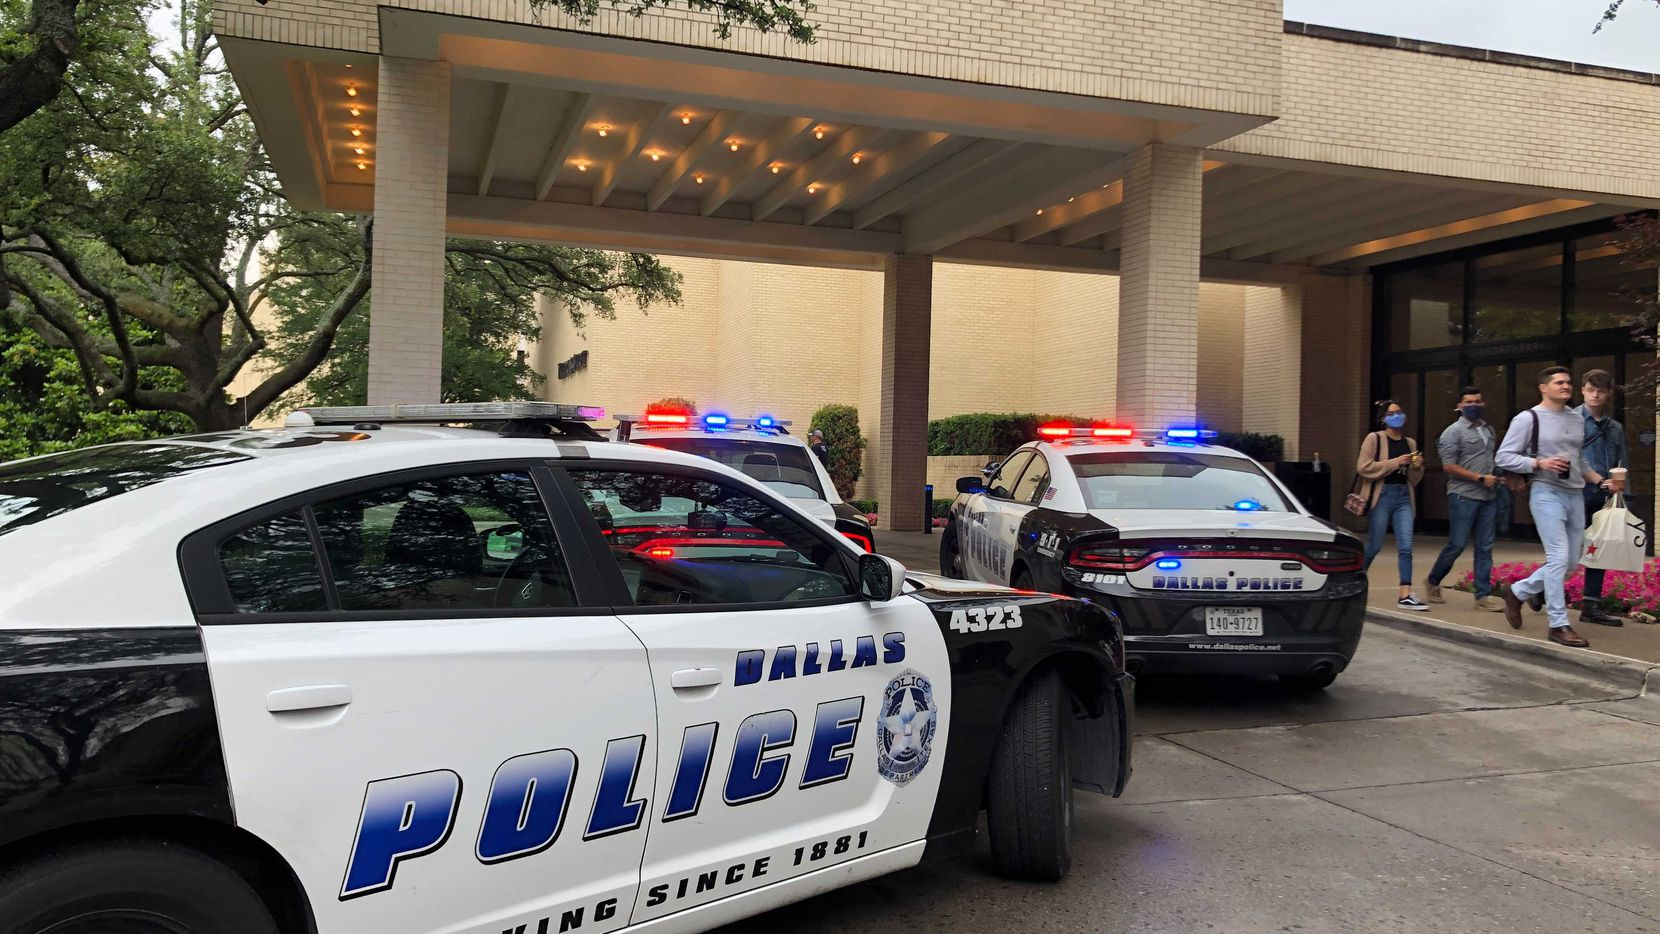 There was a heavy police presence as NorthPark Center as authorities investigated the report of a shooting Monday afternoon.